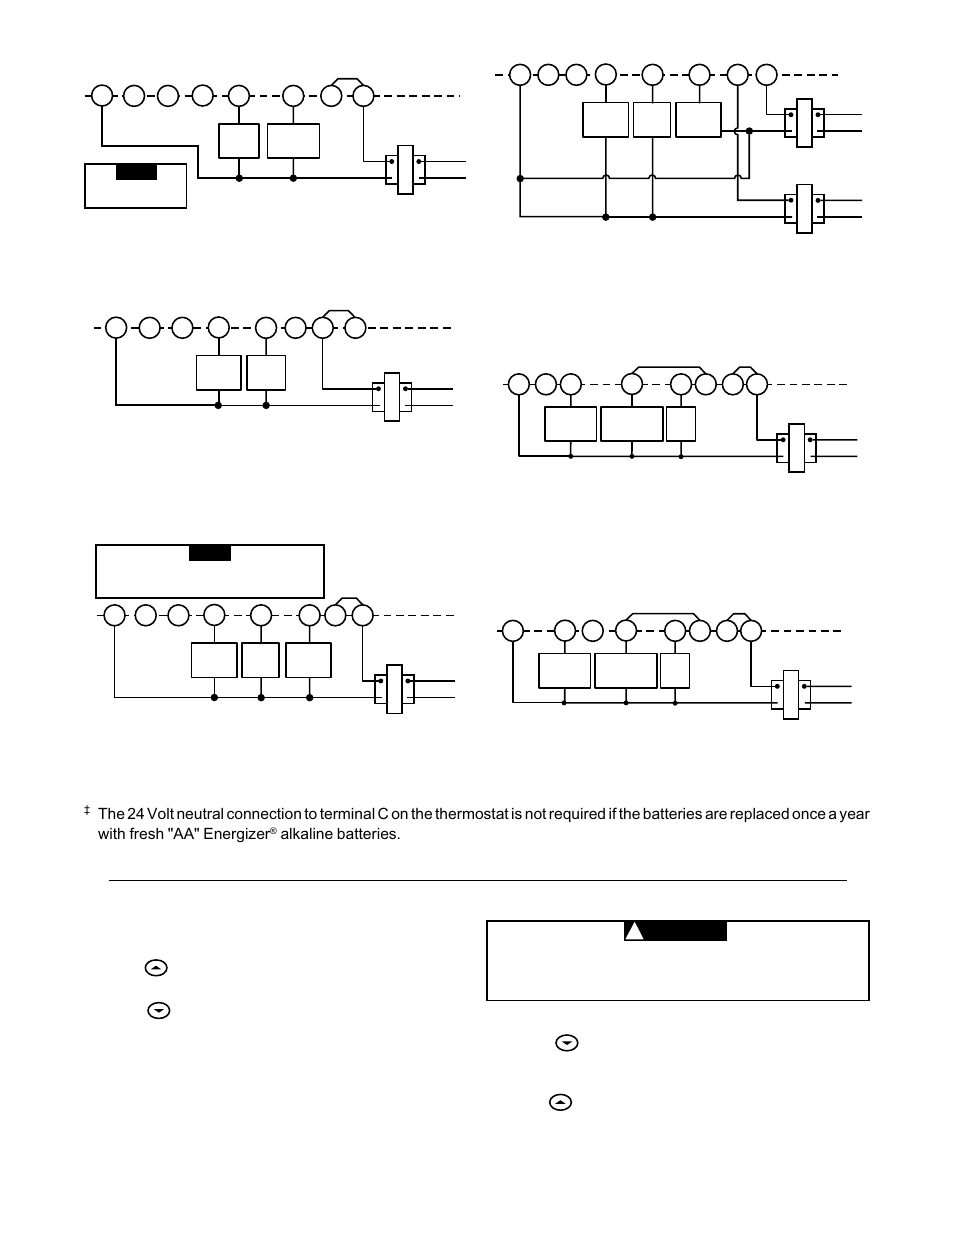 hight resolution of heating system cooling system caution white rodgers 1f86 344 user manual page 3 5